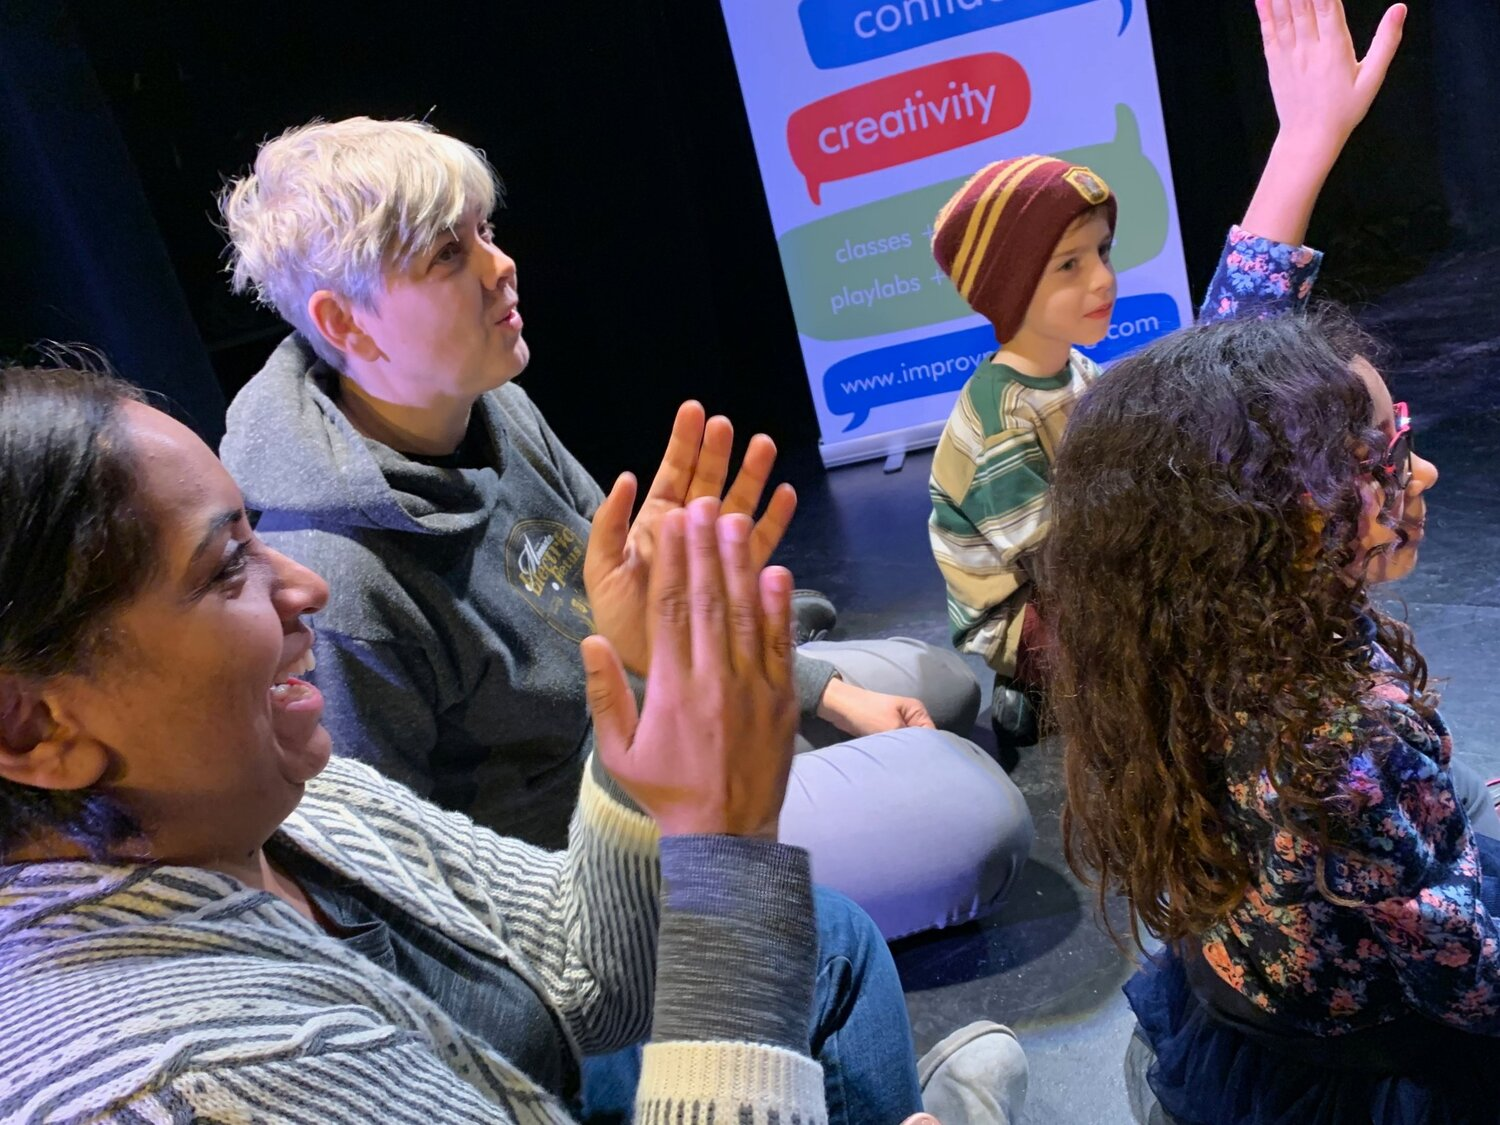 Family Improv Class - Enrich communication, connect playfully